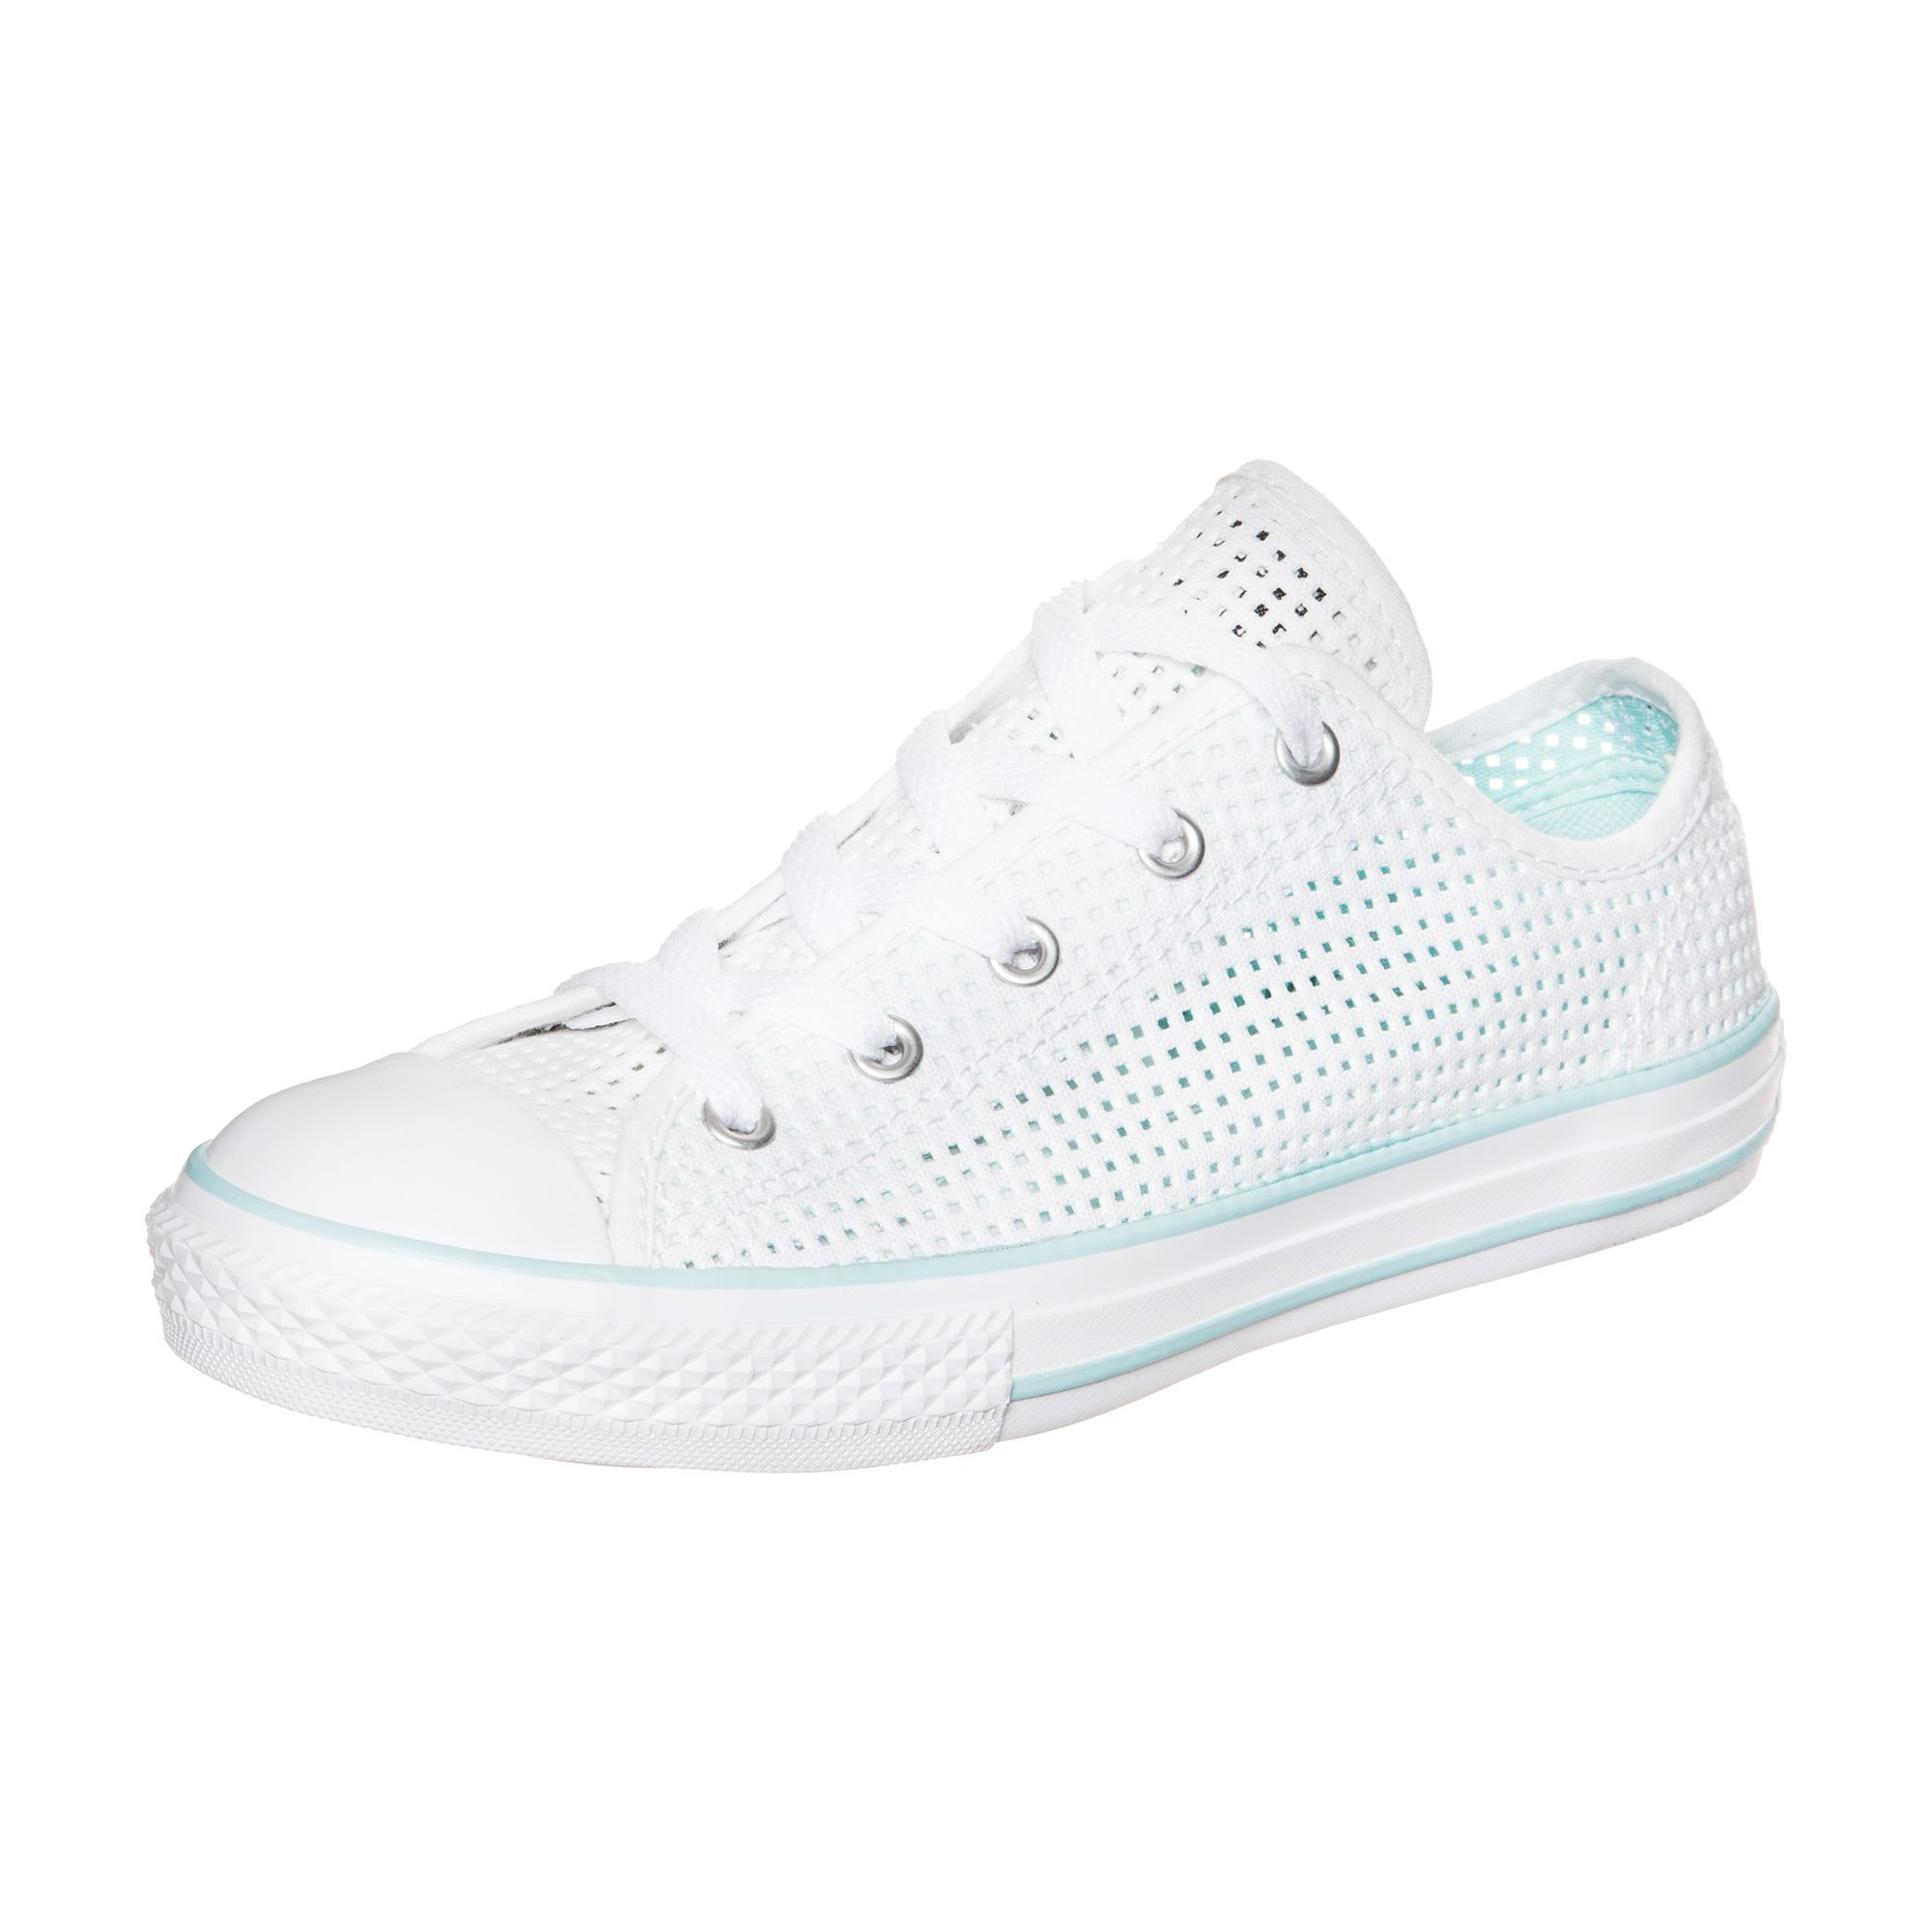 CONVERSE Converse Chuck Taylor All Star Double Tongue OX Sneaker Kinder